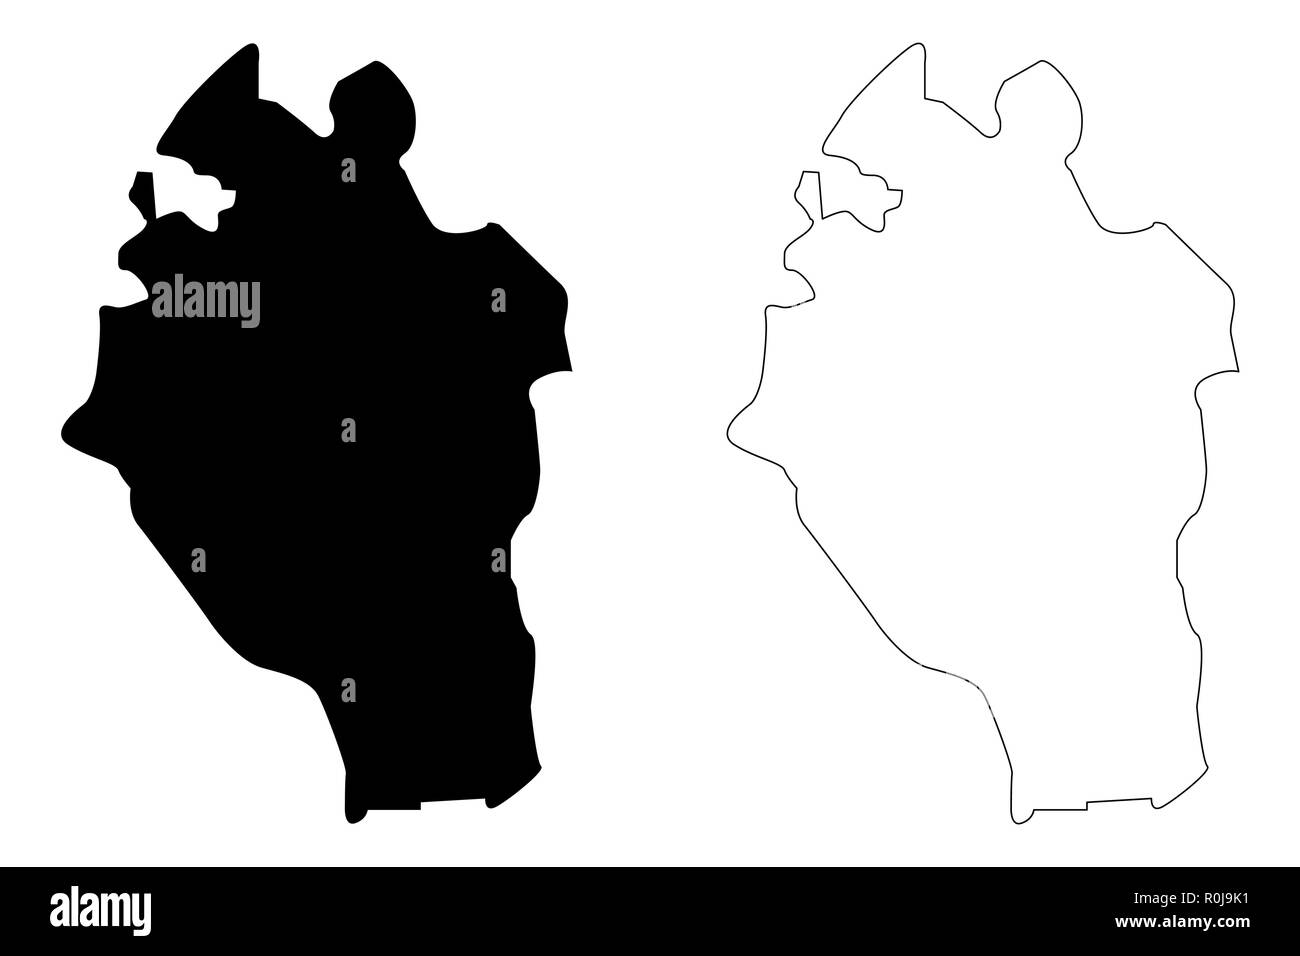 Kabaena Island (Subdivisions of Indonesia, Provinces of Indonesia) map vector illustration, scribble sketch Kabaena map - Stock Image